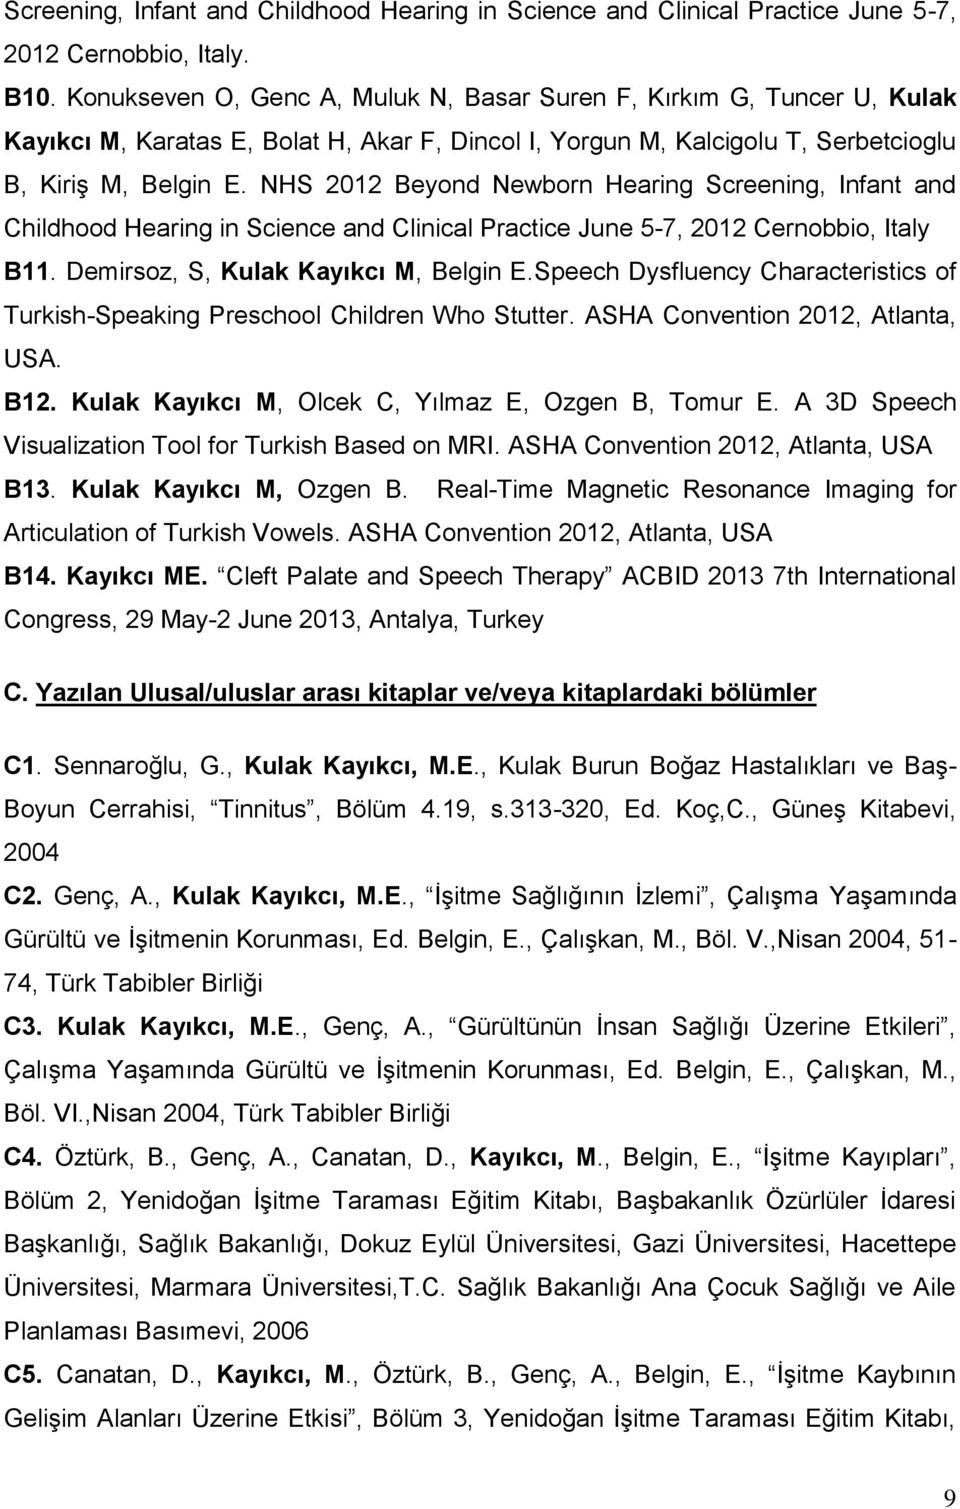 NHS 2012 Beyond Newborn Hearing Screening, Infant and Childhood Hearing in Science and Clinical Practice June 5-7, 2012 Cernobbio, Italy B11. Demirsoz, S, Kulak Kayıkcı M, Belgin E.